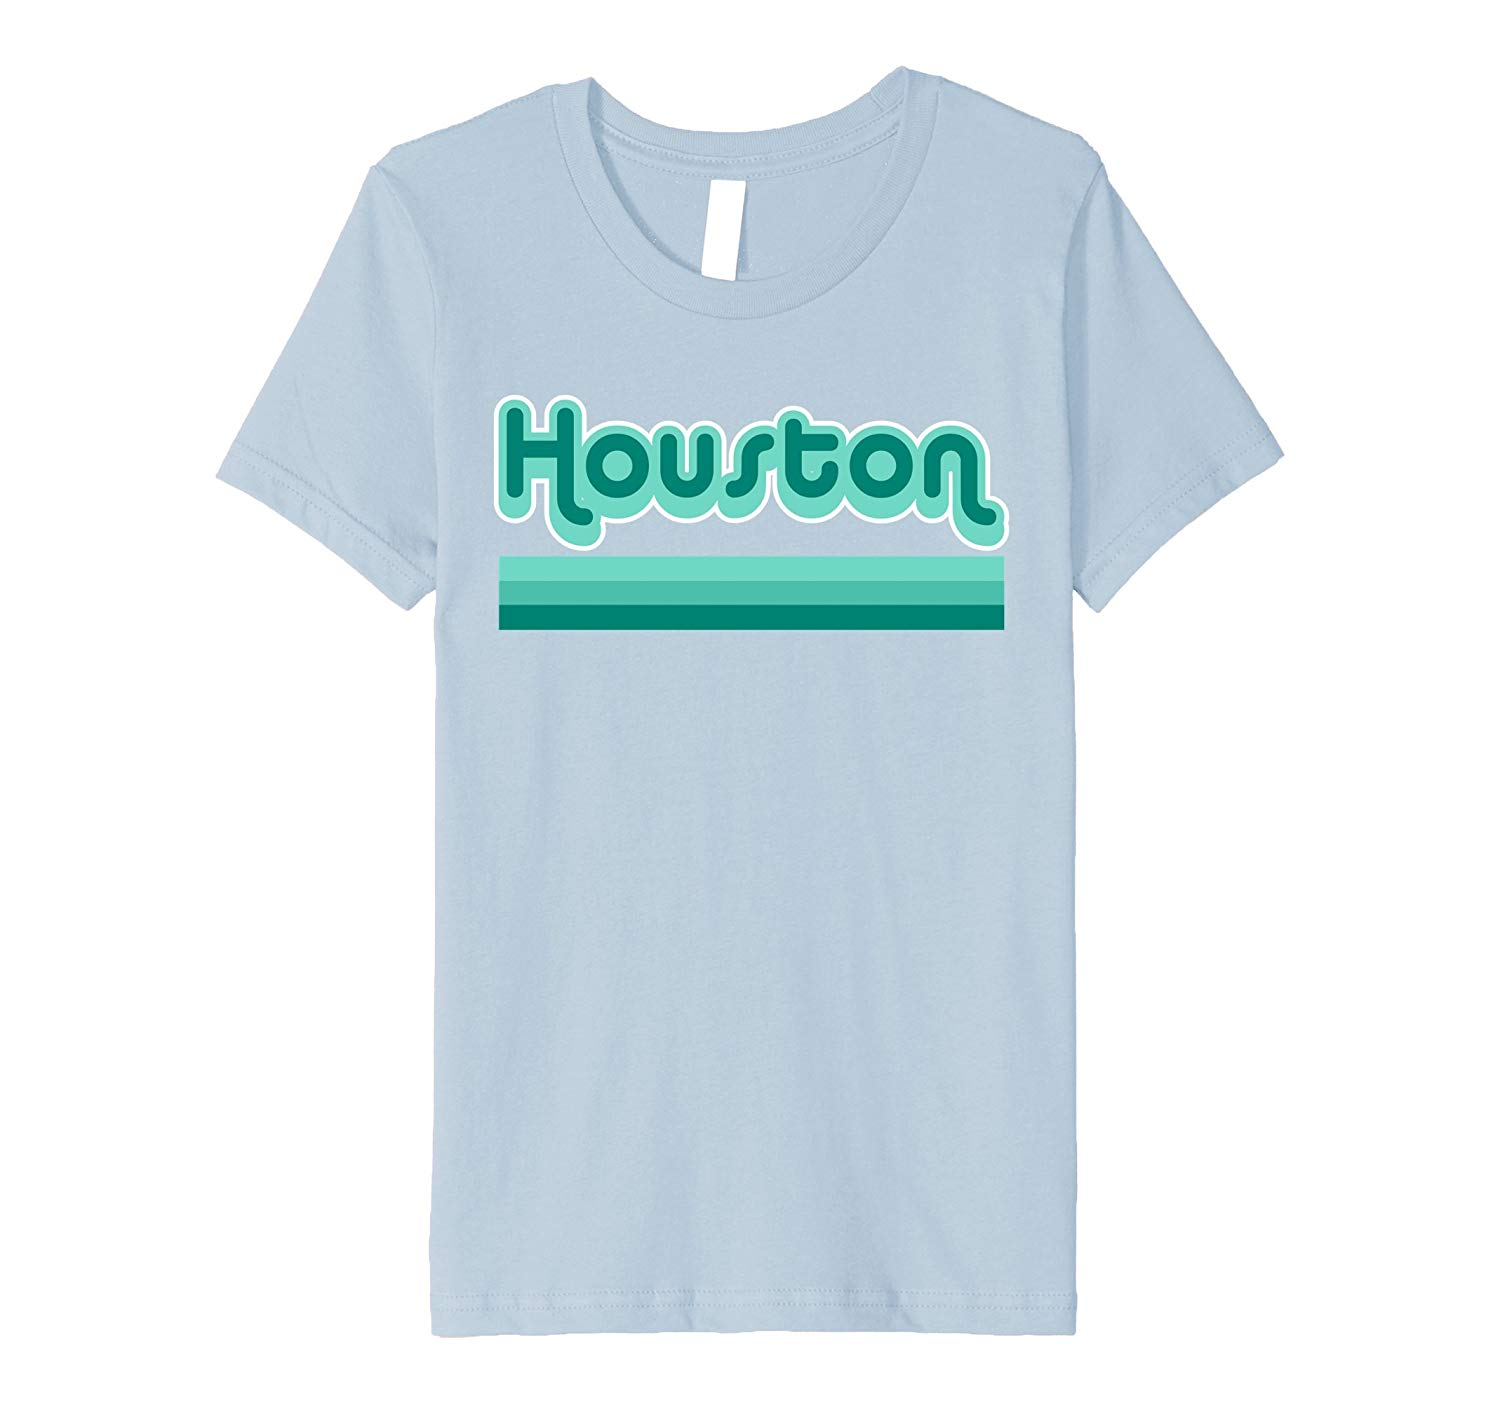 Cheap Houston T Shirt Design Find Houston T Shirt Design Deals On